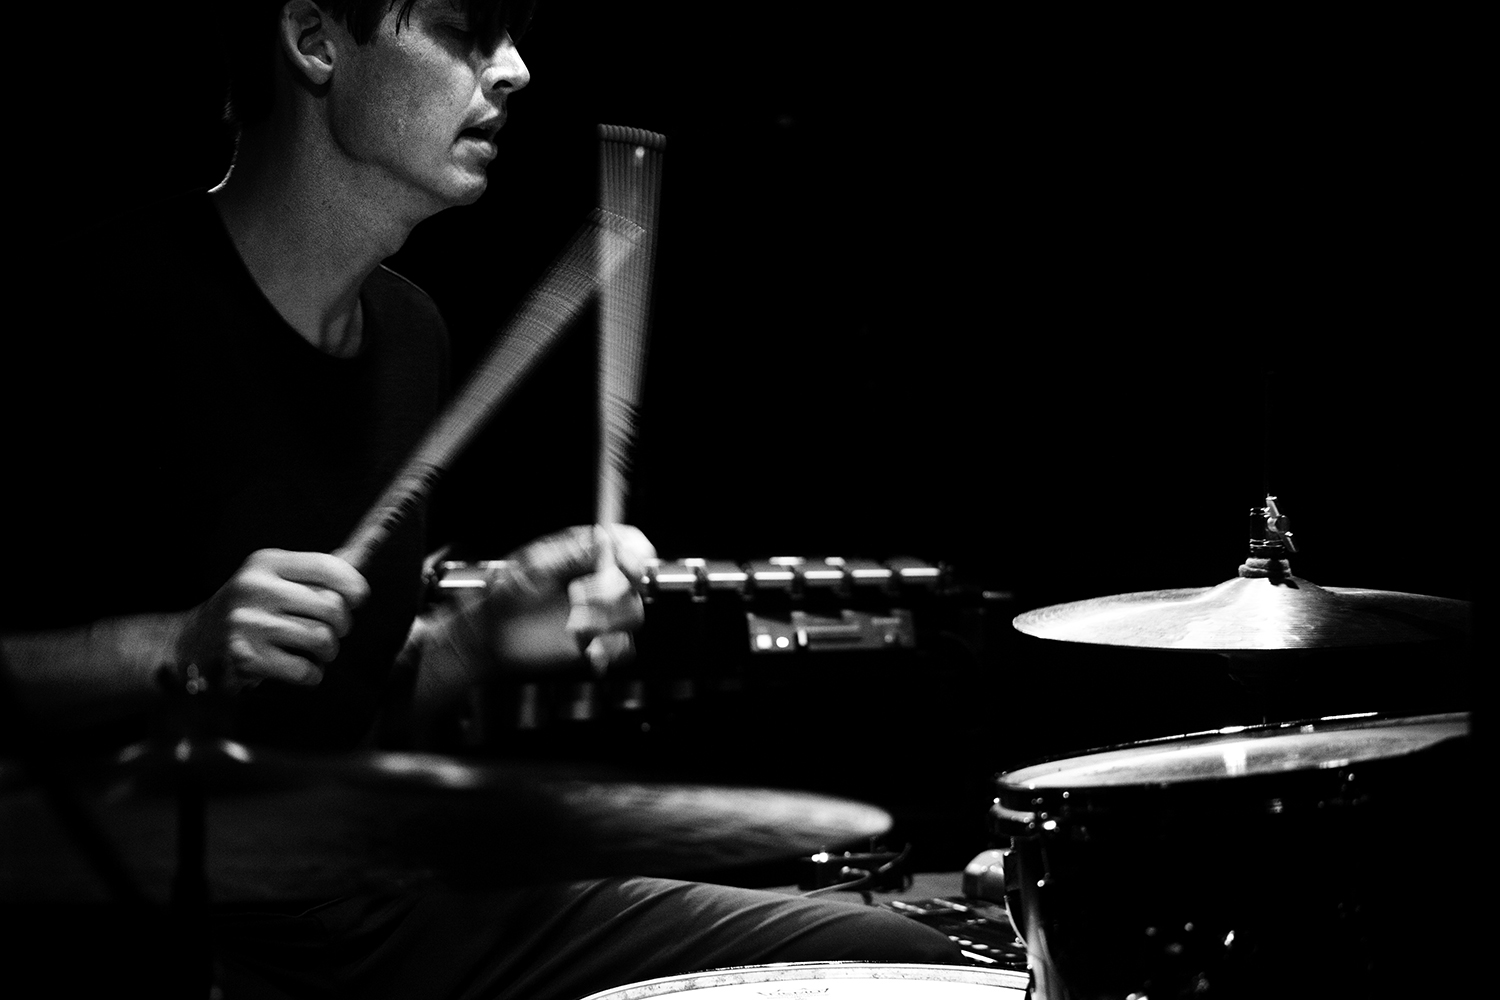 Ches Smith by Laurent Orseau - Concert - Les Ateliers Claus - Brussels, Belgium #4